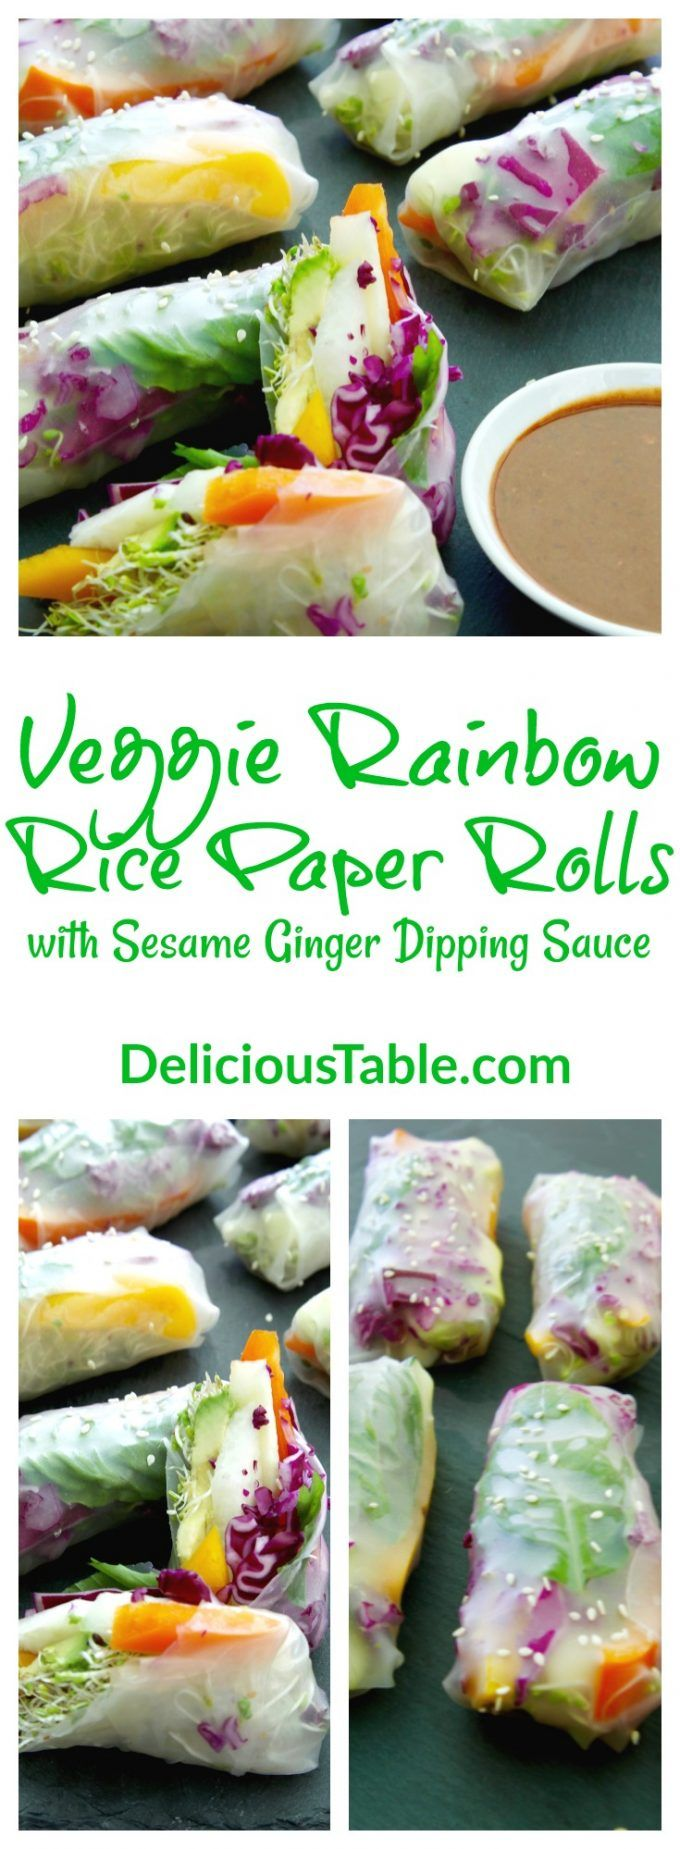 For a light colorful lunch, Veggie Rainbow Rice Paper Rolls with Sesame Ginger Dipping Sauce are the way to up your veggie game, plus rolling them is easy!